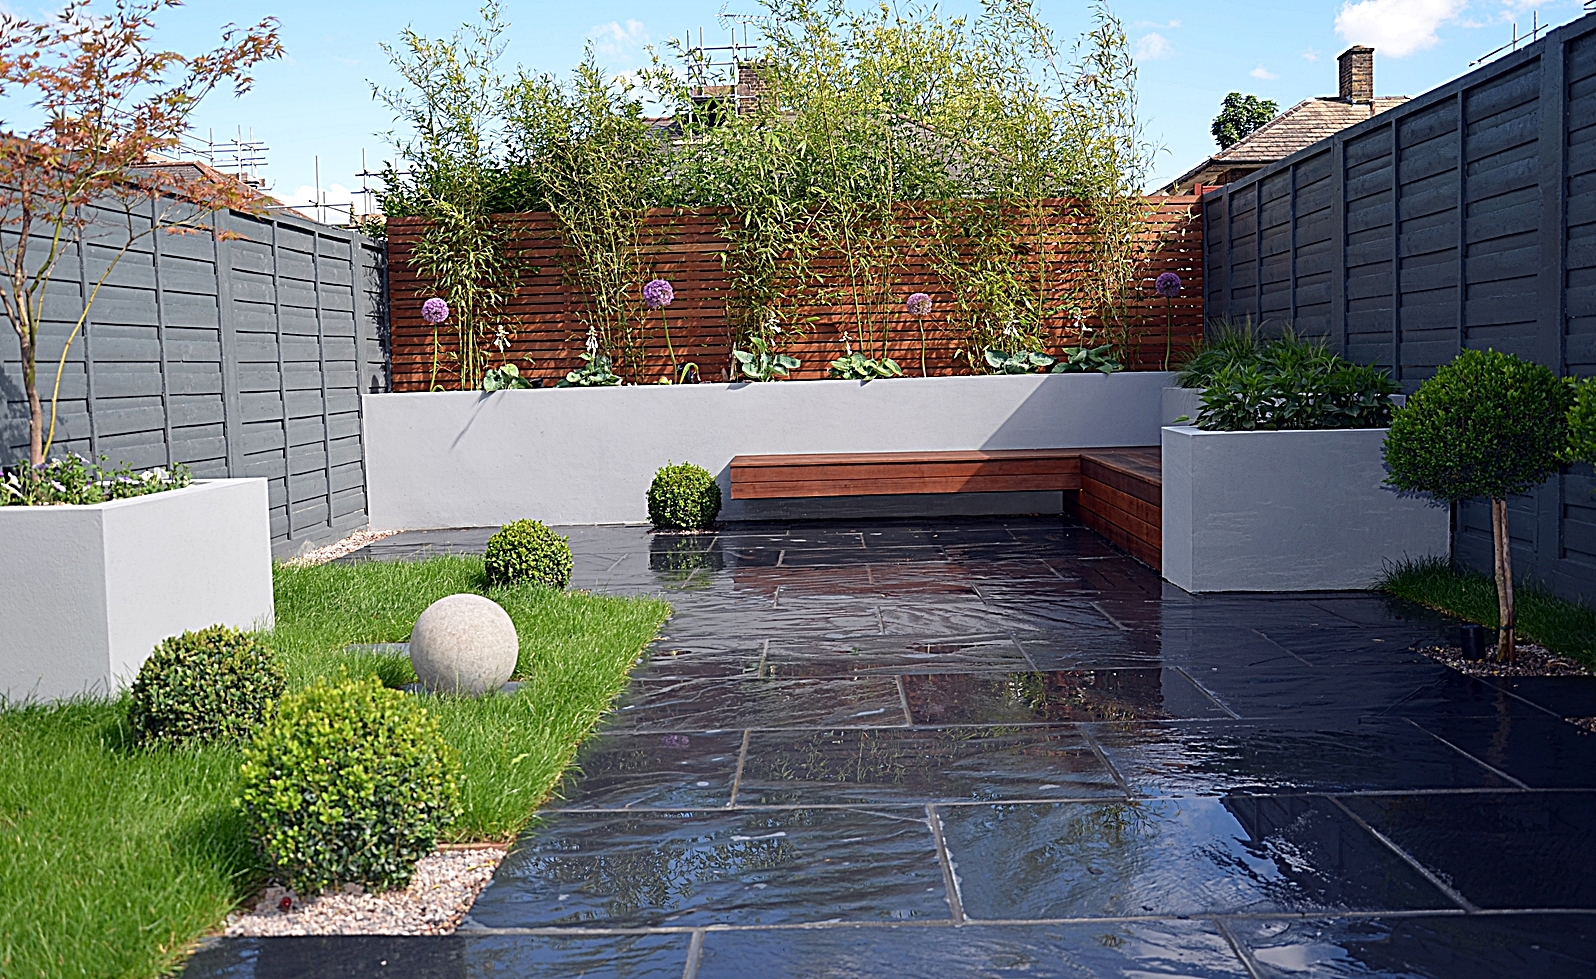 raised beds architectural planting ornamental lawn hardwood screen dark grey modern fence london